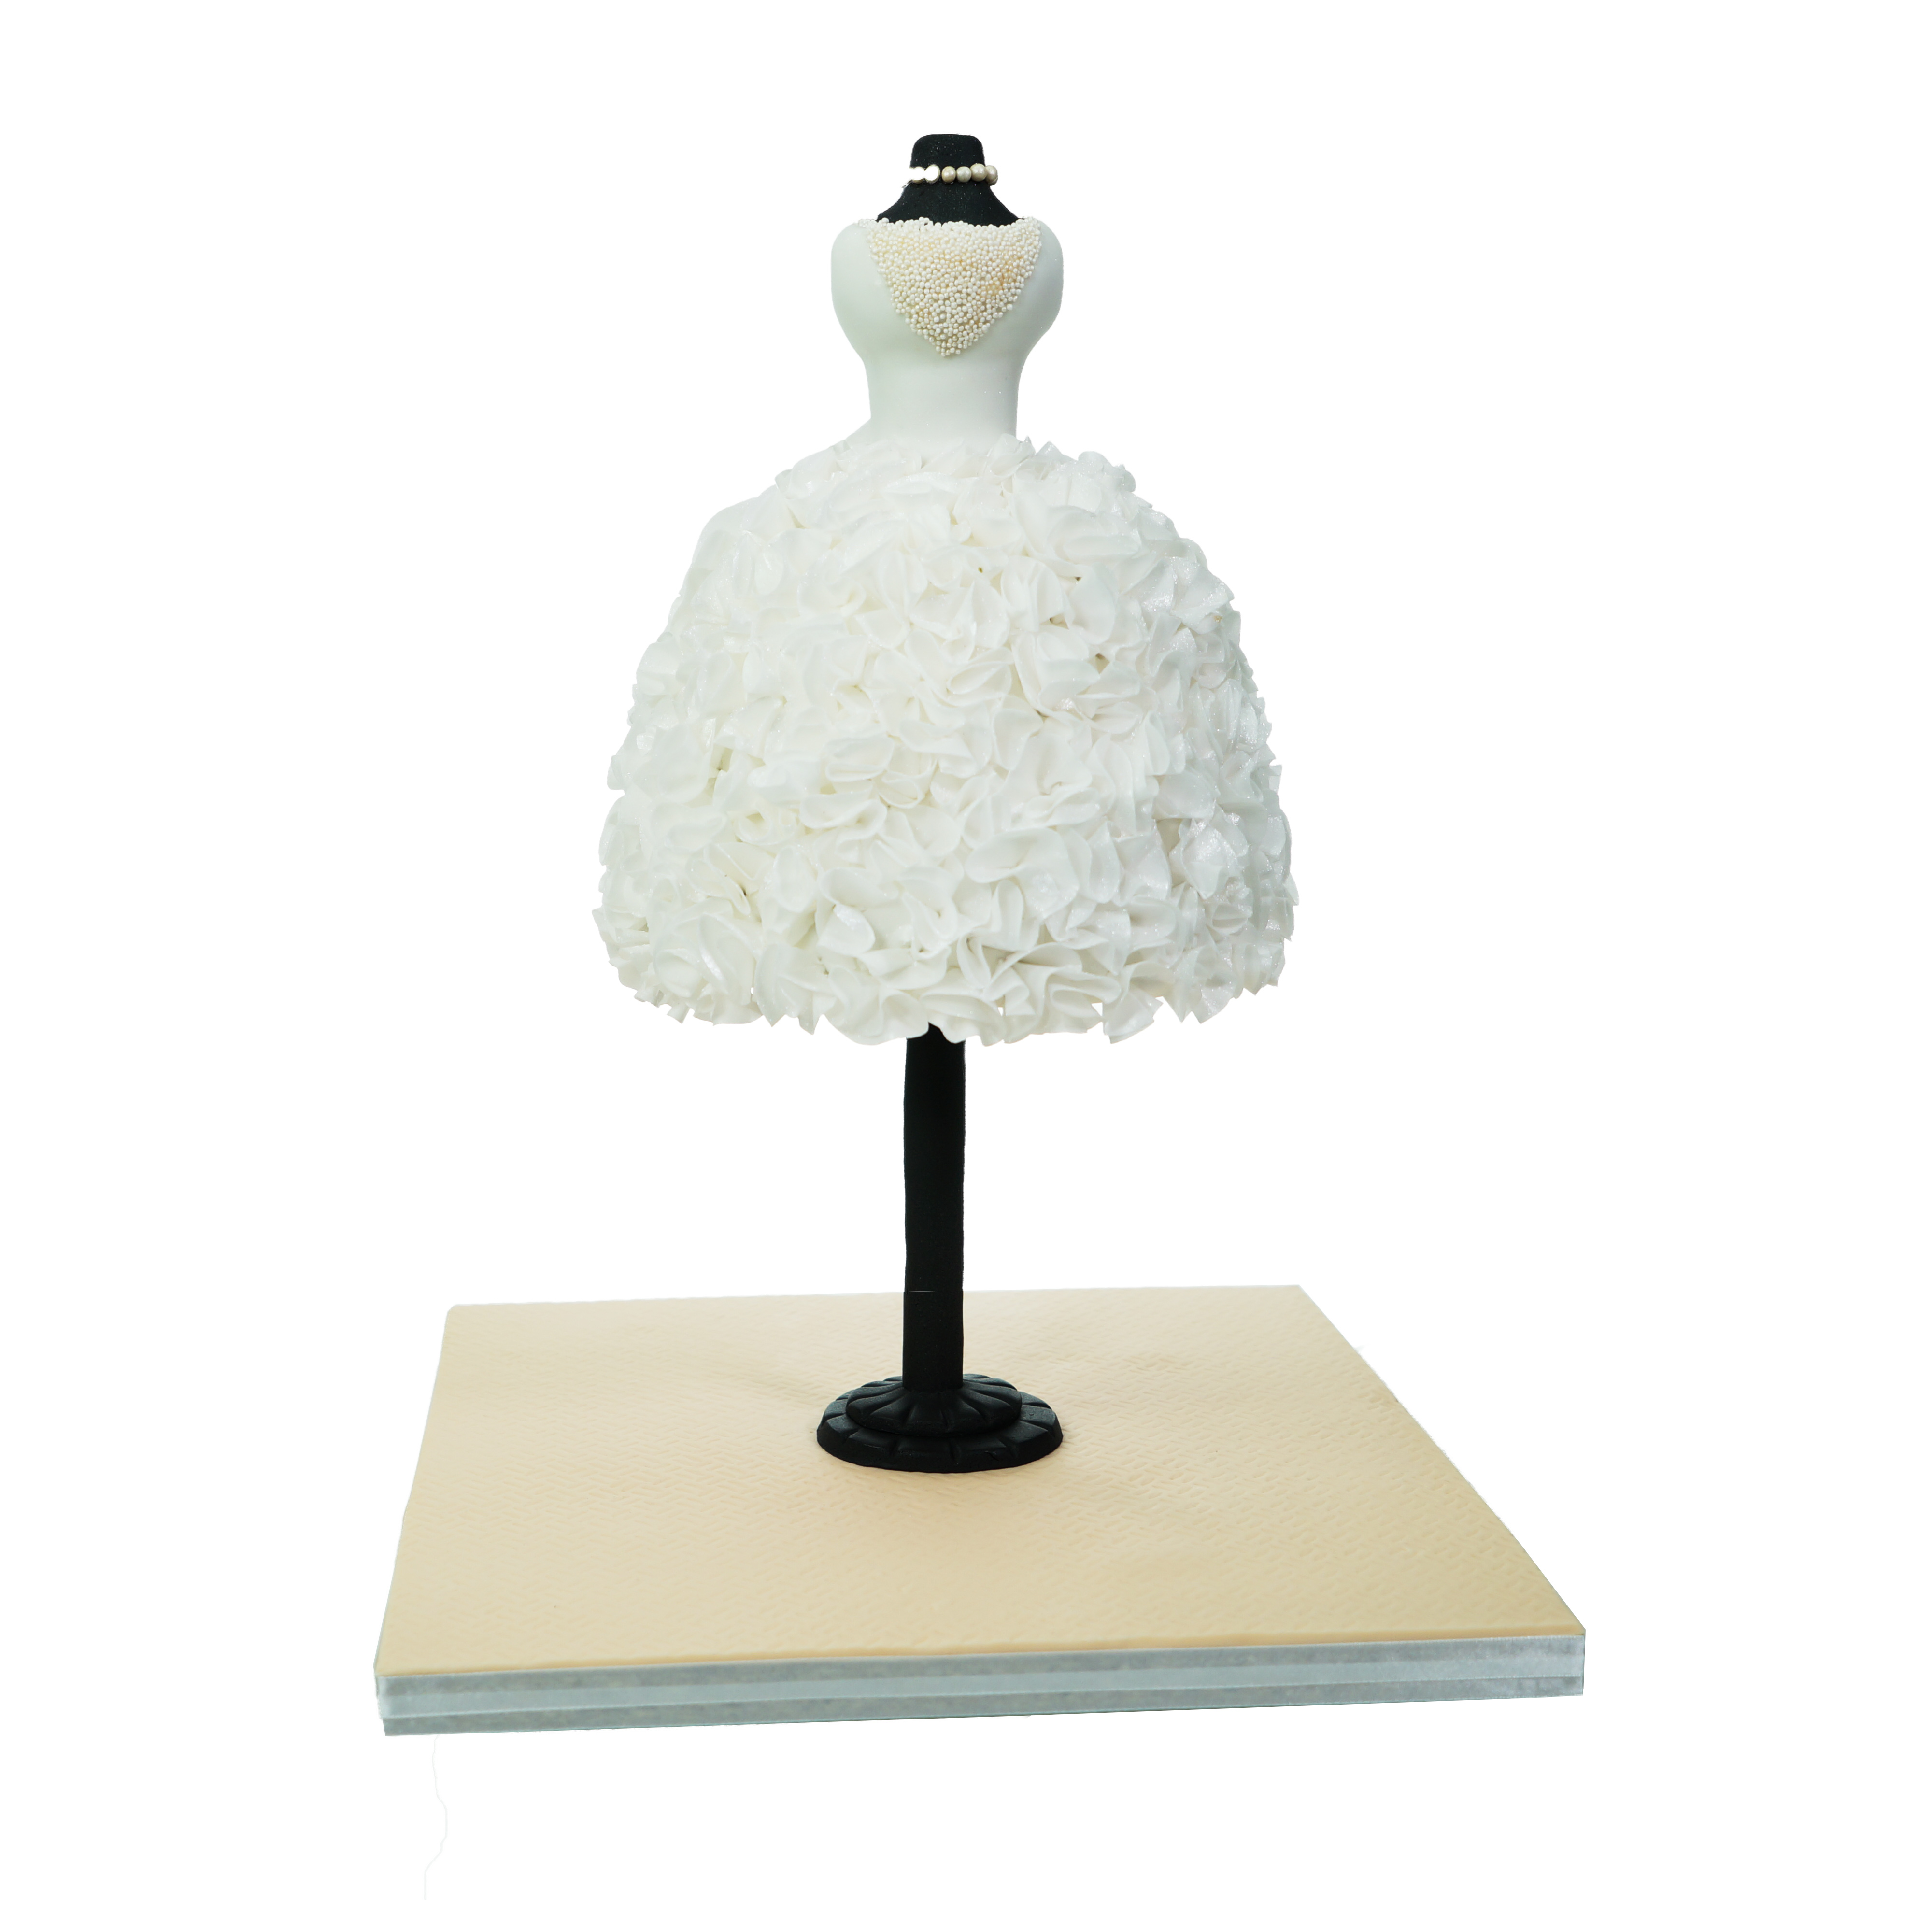 WEDDIBLE DRESS for Learn Cake Decorating Online by Sylvia Elba 4